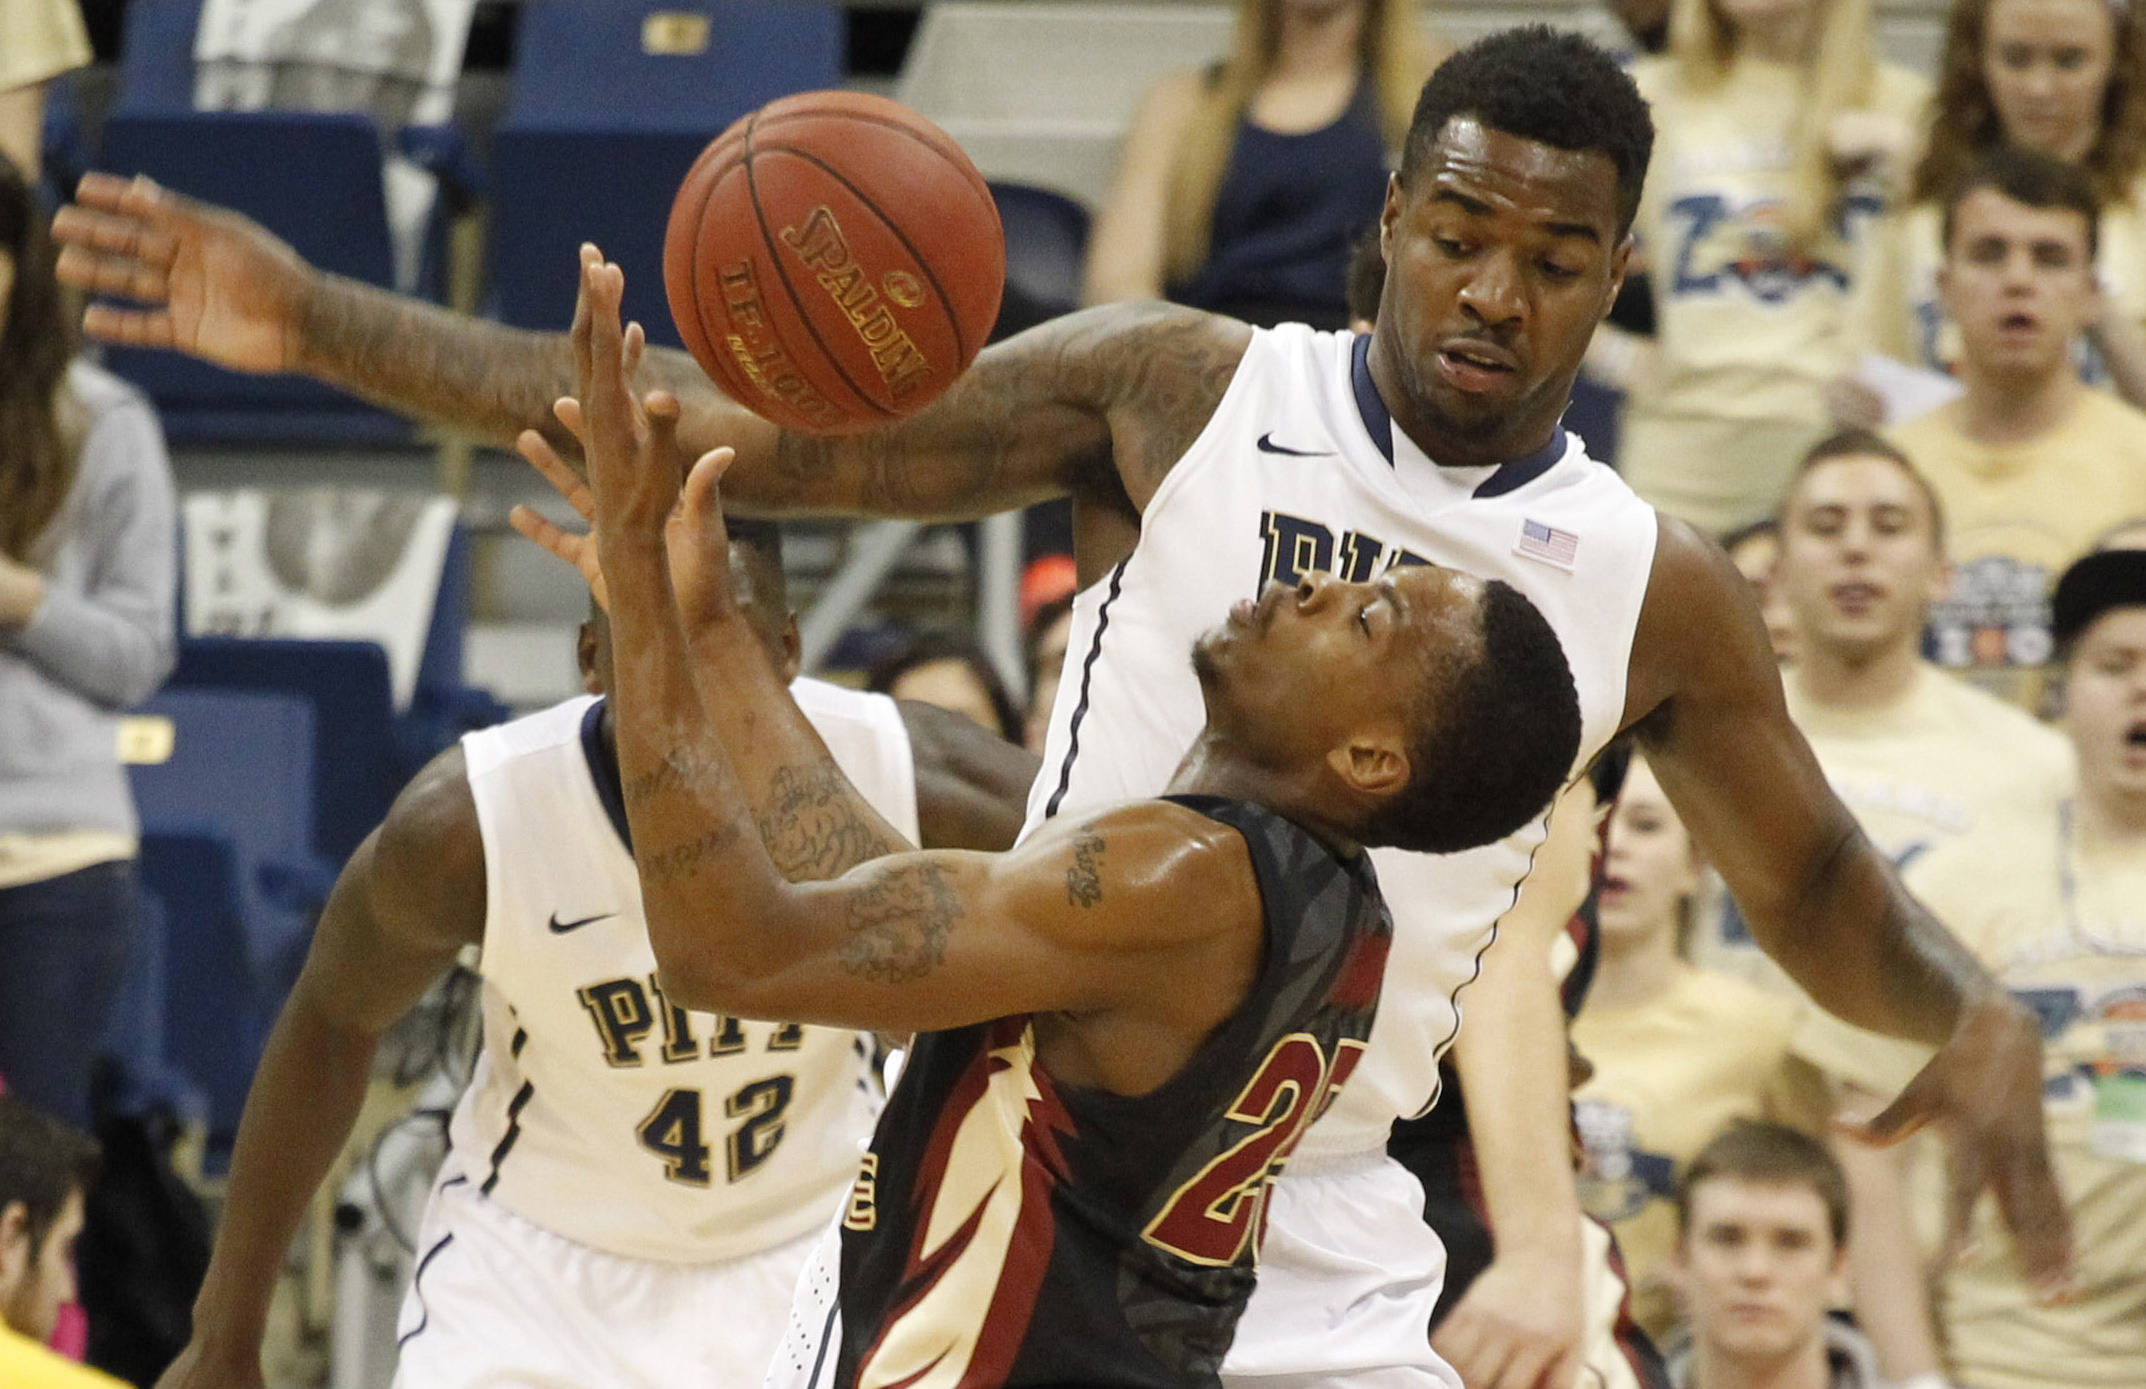 Florida State Seminoles guard Aaron Thomas (25) battles for the ball with Pittsburgh Panthers forward Michael Young (rear) during the first half. (Charles LeClaire-USA TODAY Sports)